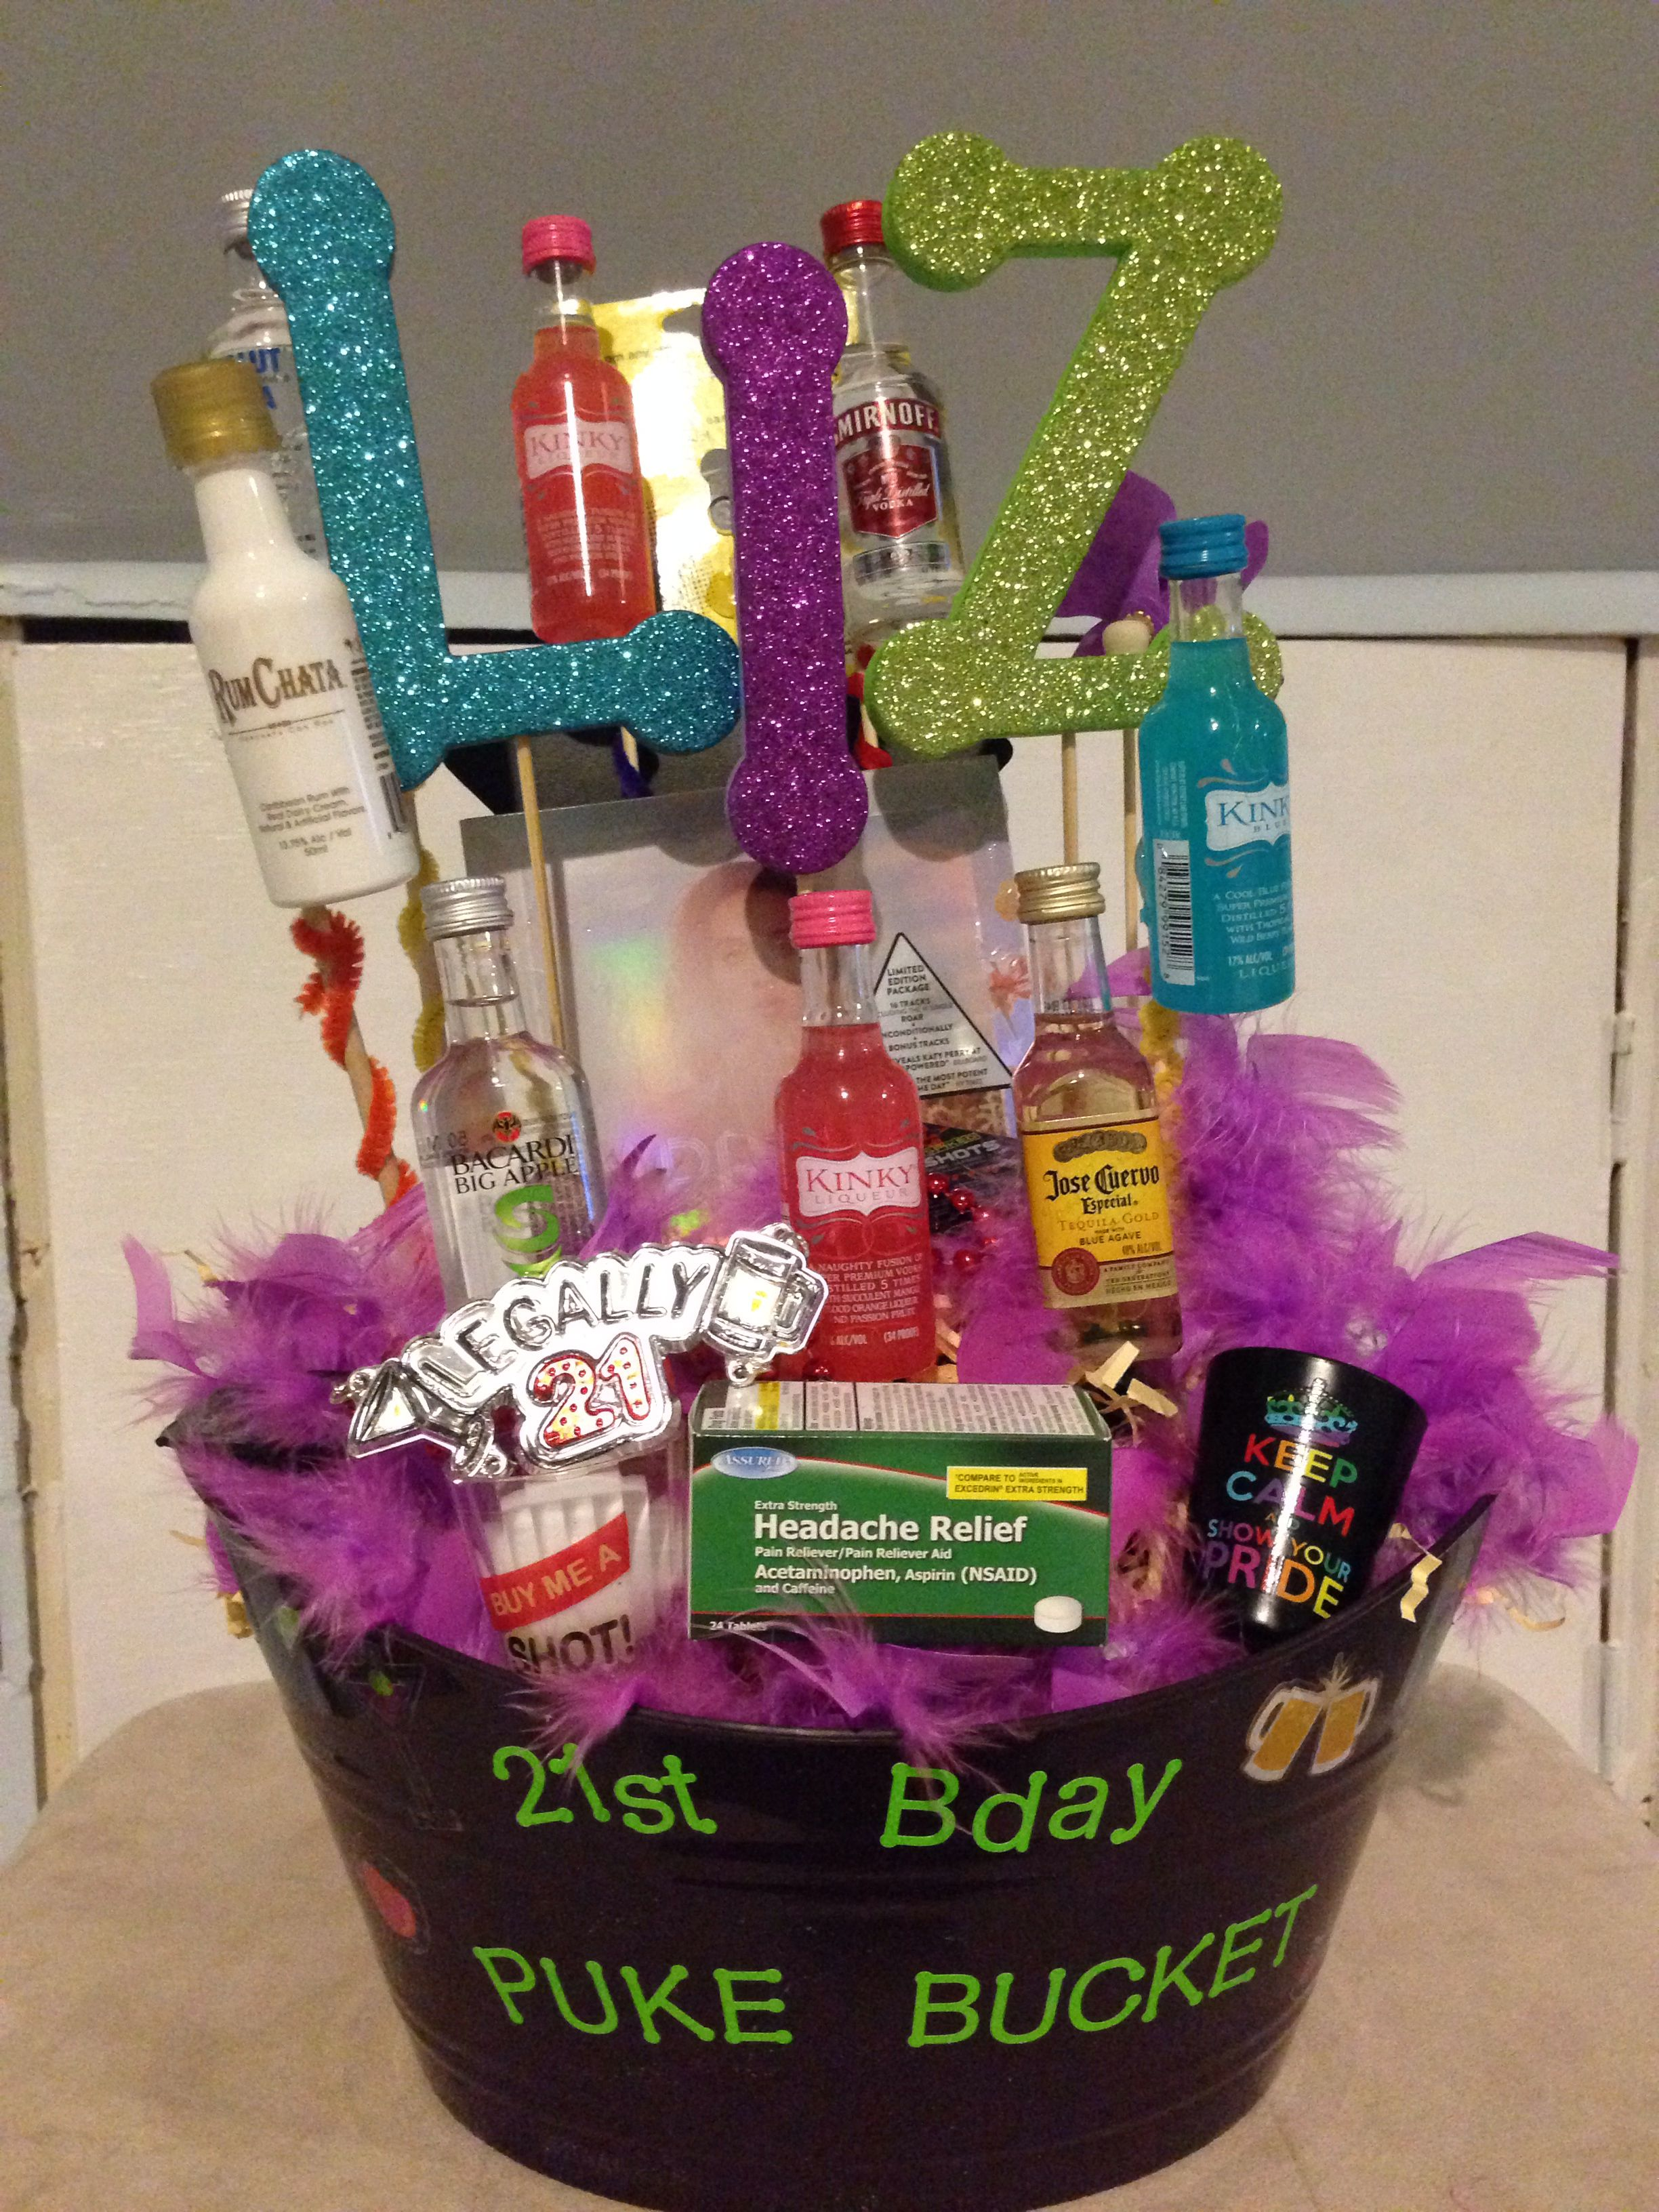 21st Birthday Gift Basket I Made For My Sister In Law Mini Liquor Bottles Foam Letters From Hobby Lobby New Katy Perry Cd Shot Glasses Spencers